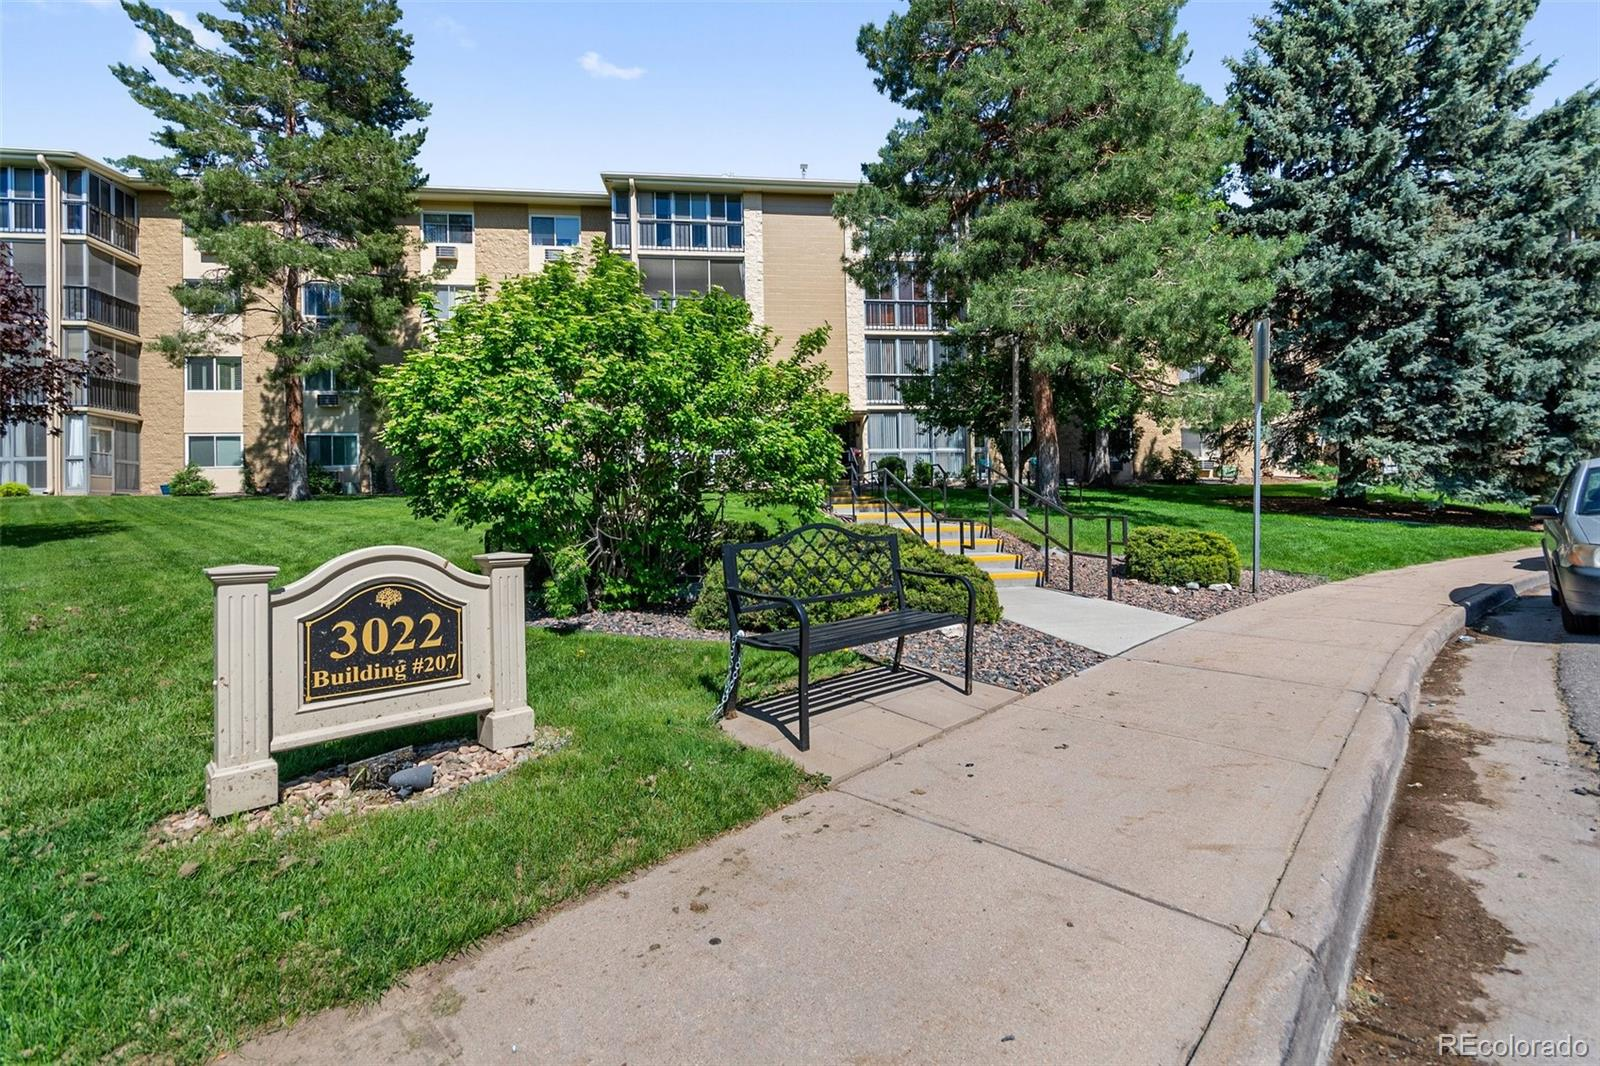 Amazing opportunity for the right buyer to own a piece of a respected and well maintained 55+ community. Located less than a mile from I-225, Nine Mile Light Rail Station, and Cherry Creek Reservoir. Enjoy the new club house which include Rendezvous Restaurant, where you can enjoy a great Sunday brunch, 9 hole executive golf course, fitness center, indoor/outdoor pools, tennis and pickle ball, event space, business center, resident trips and events, and lot's of different classes (included with HOA). Enjoy a maintenance-free lifestyle with 24/7 security (HOA). Easy access to the airport, downtown Denver and the Aurora Shopping Mall. Great condo, priced to sell, on the 4th floor steps from the elevator and close to your inside storage unit. Trash shoot accessible on floor and laundry is on the 2nd floor. Have direct access to building from the main street. 2 large bedrooms, 2 full bathrooms, open kitchen, closed in lanai with views of the mountains. Ceiling fans with remotes, AC units in all three rooms, great lighting throughout. Carpet throughout with linoleum in bathrooms and kitchen. Updated stove,  refrigerator (indoor ice/water), microwave, dishwasher, new sink and faucet, large storage room or craft room. Reserved covered parking garage enter ground level right across from main building entrance and on site secured RV storage available.